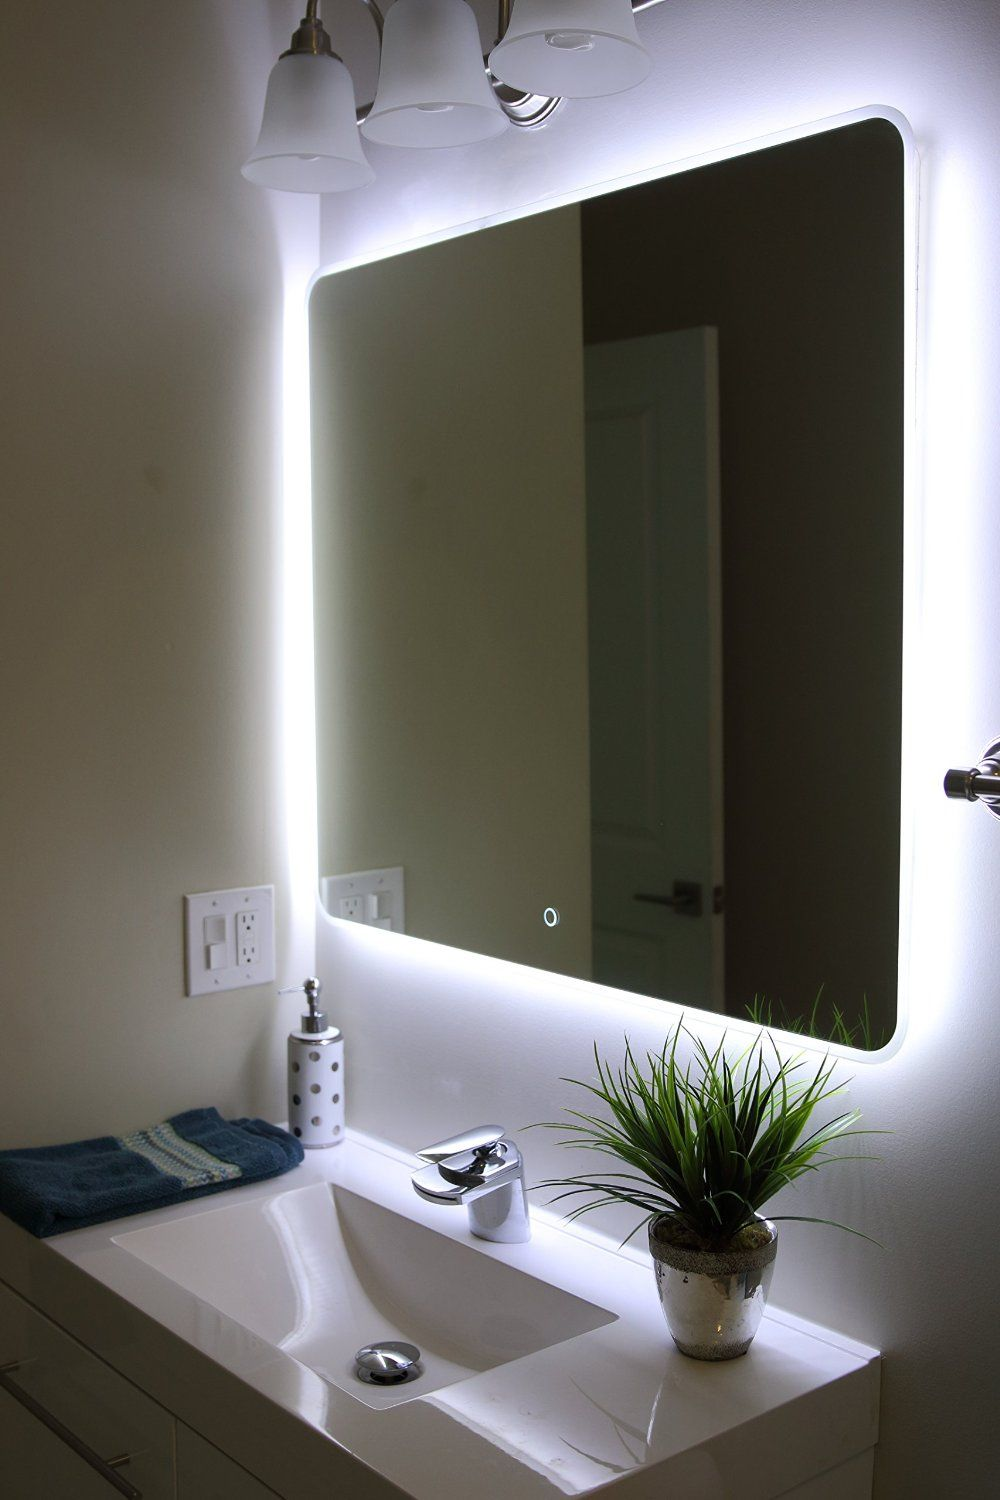 Bathroom Mirror Led windbay backlit led light bathroom vanity sink mirror. illuminated